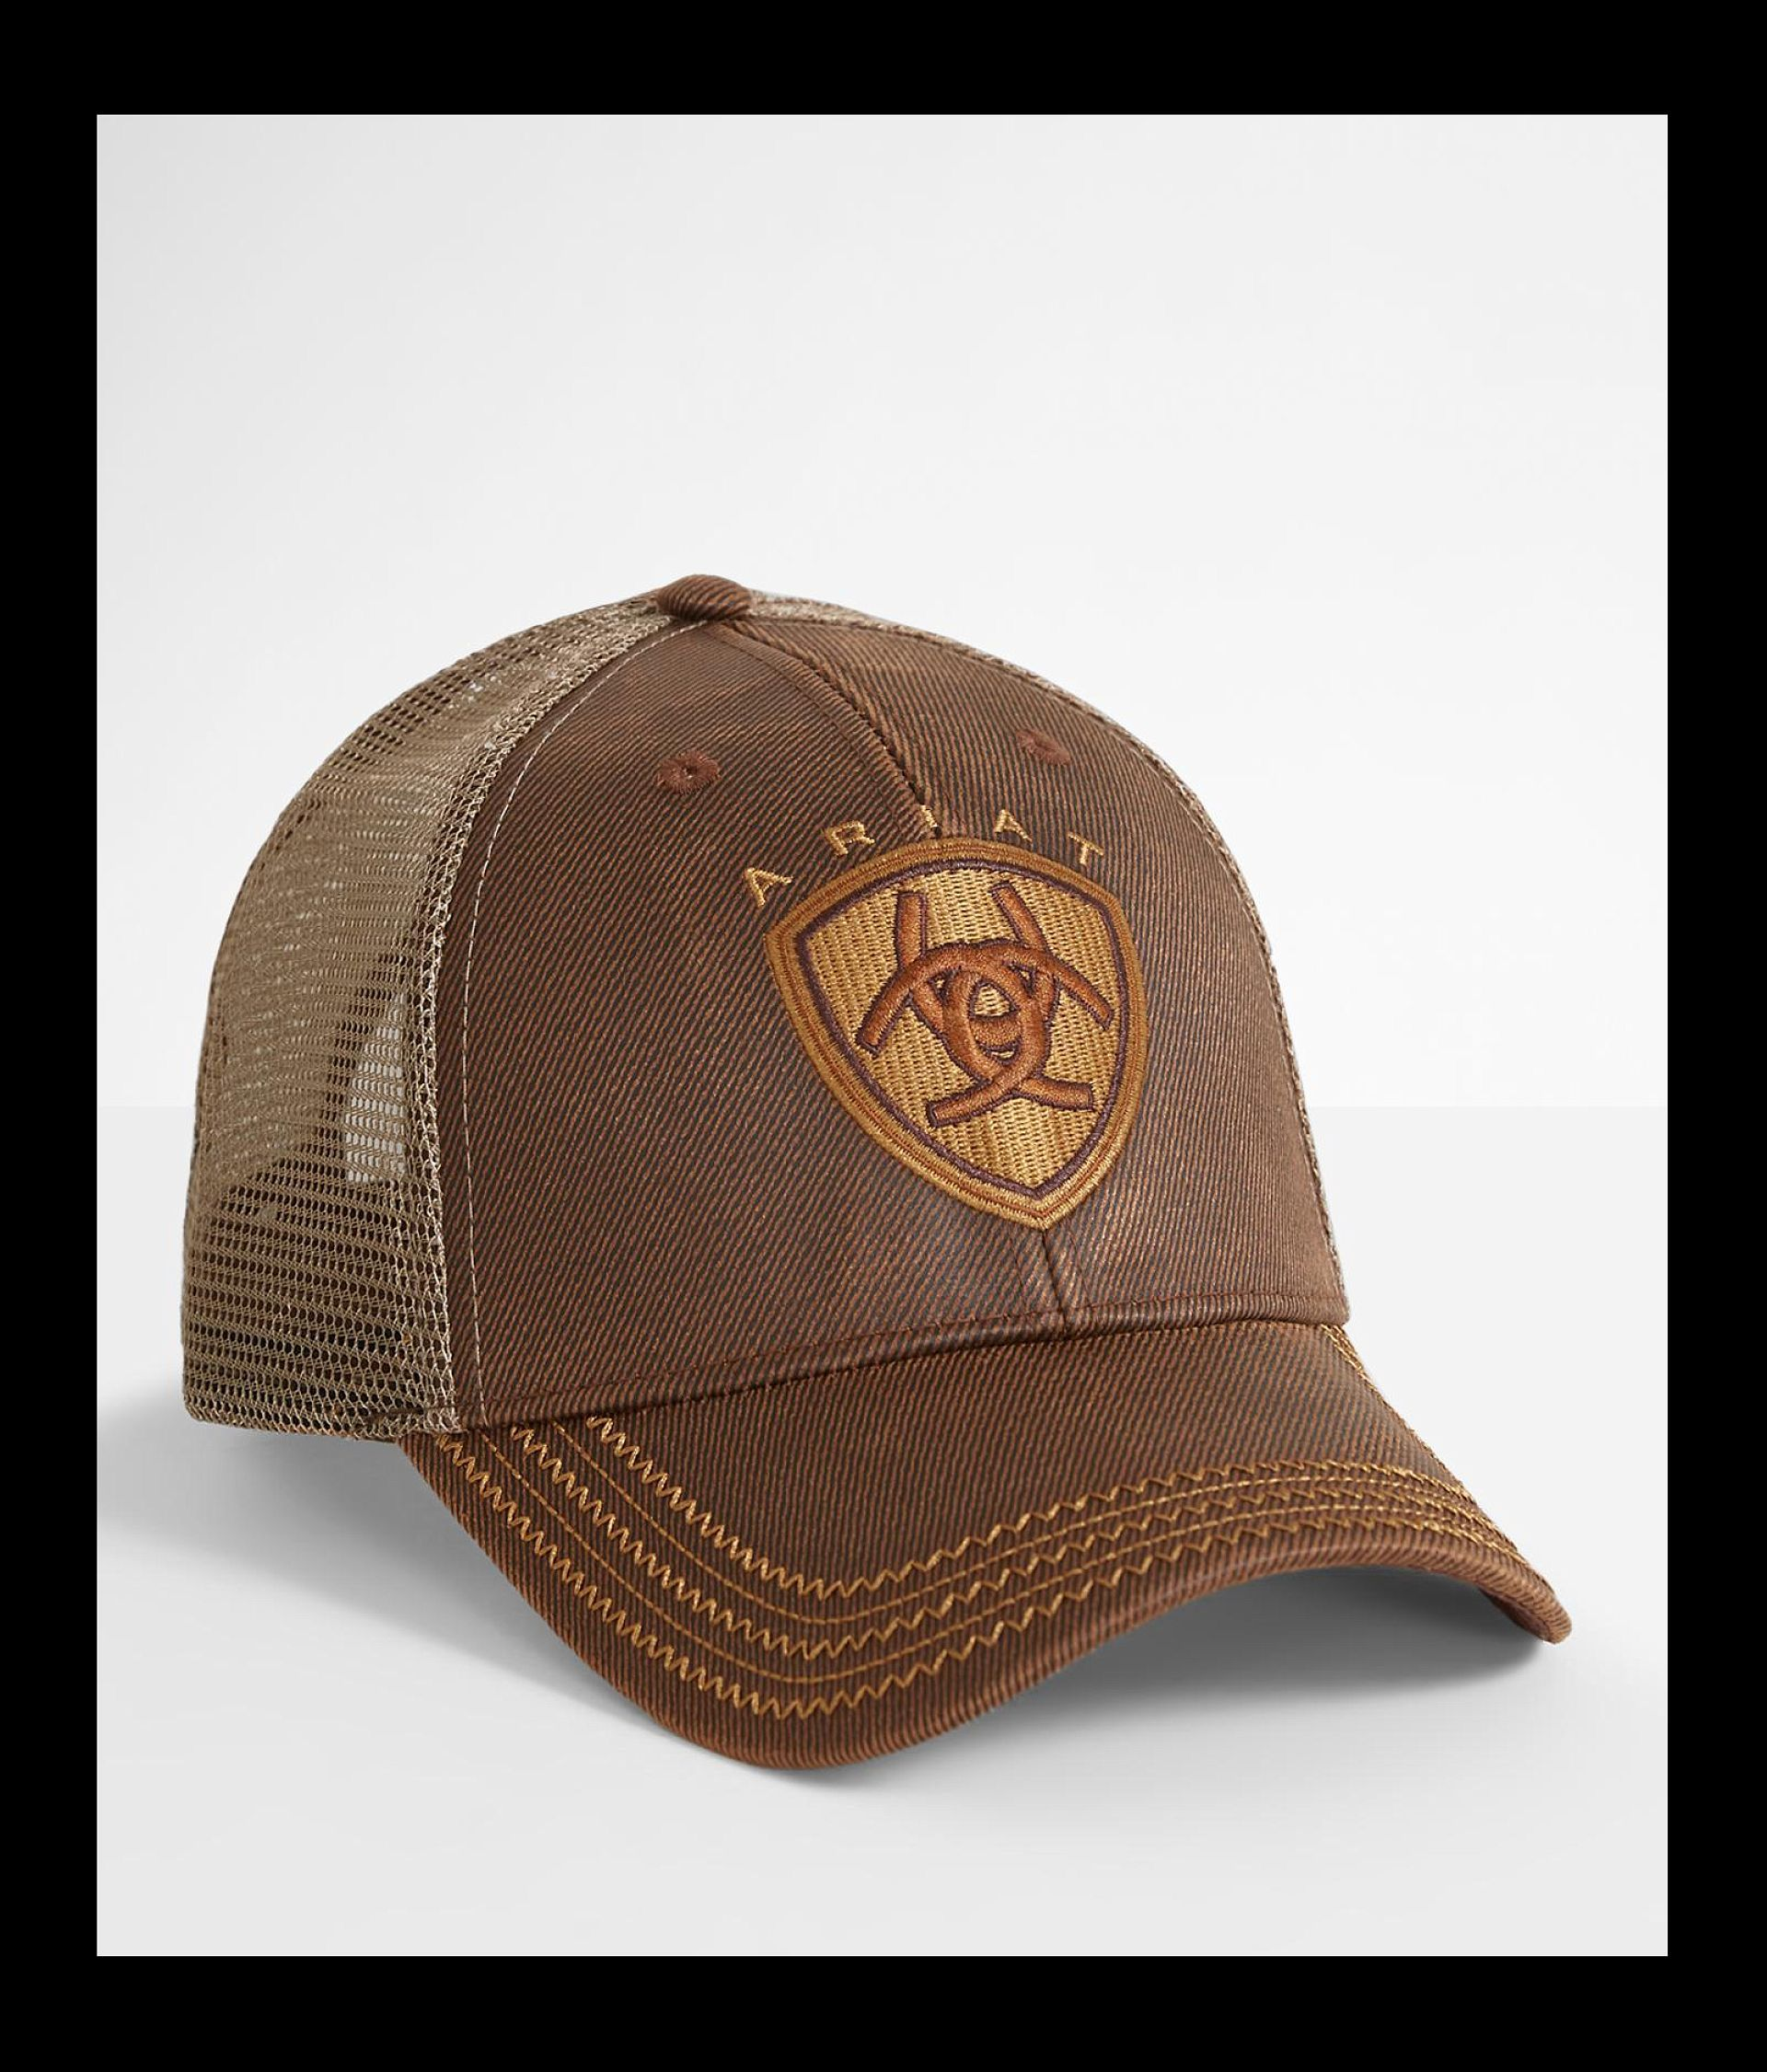 f47d77d25 Ariat Oil Skin Trucker Hat - Men's Hats in Brown | Buckle